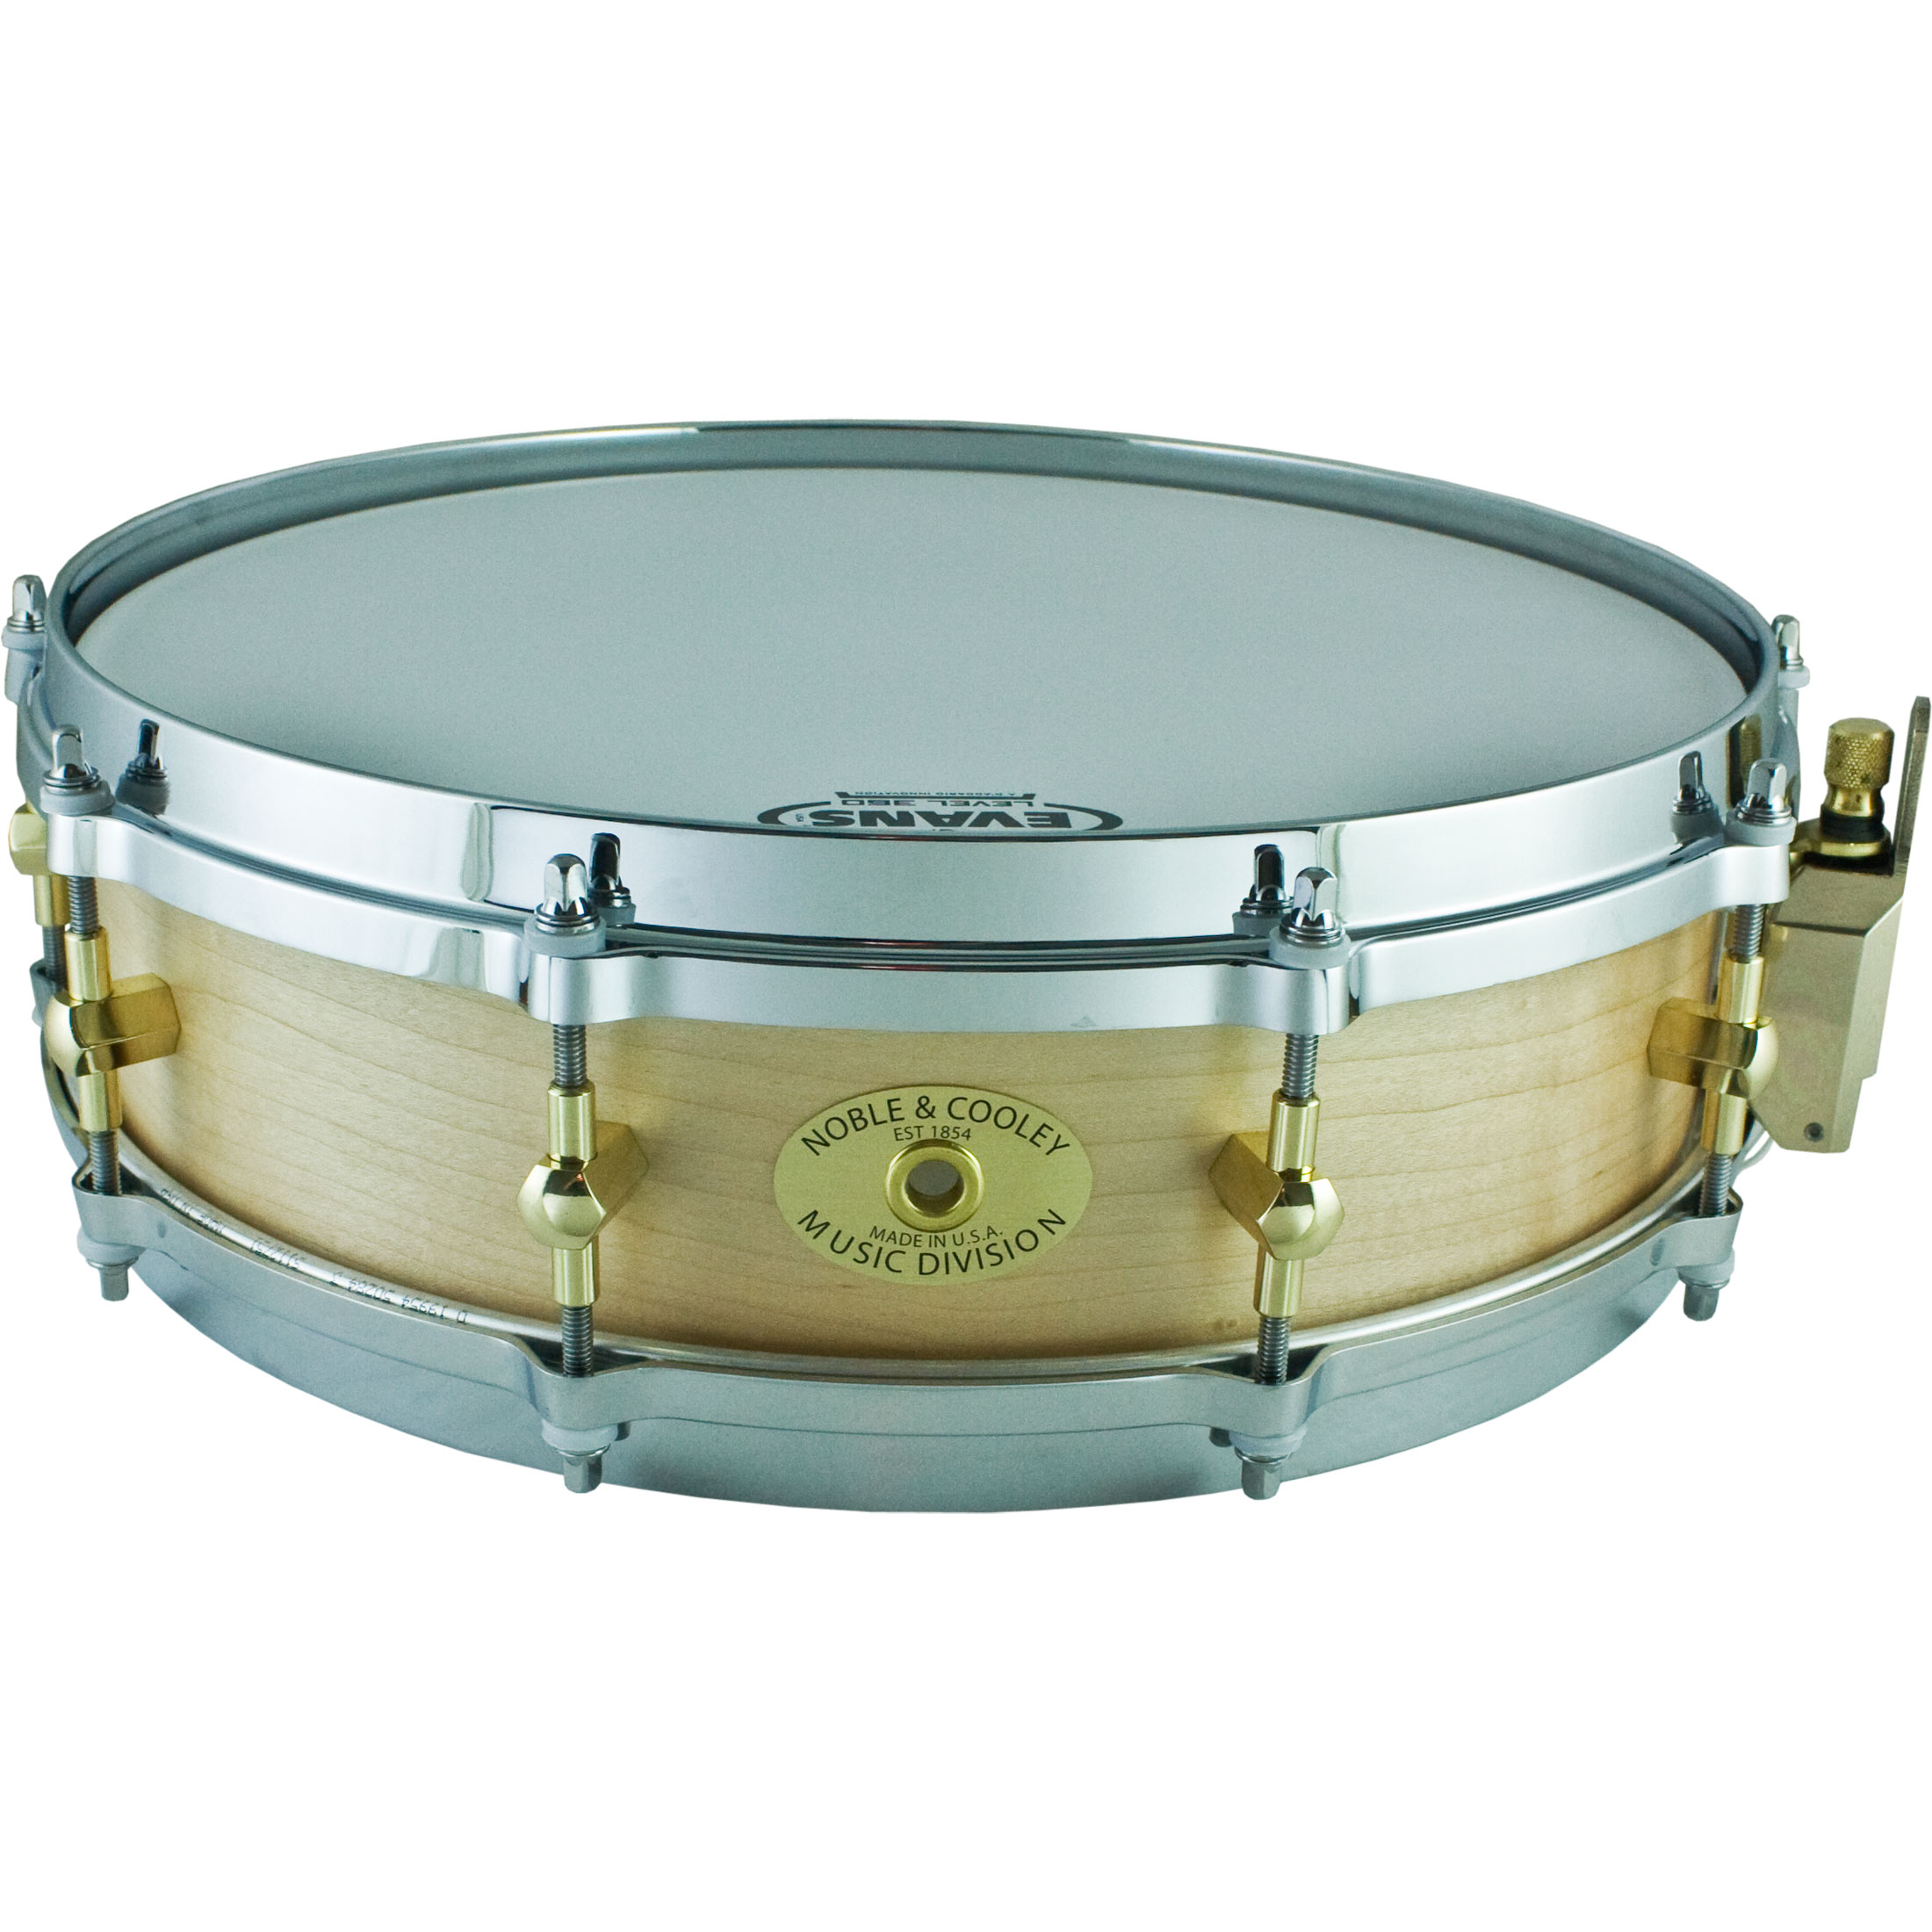 "Noble & Cooley 3 7/8"" x 14"" Classic Solid Shell Maple Piccolo Snare Drum in Honey Maple Stain Oil"